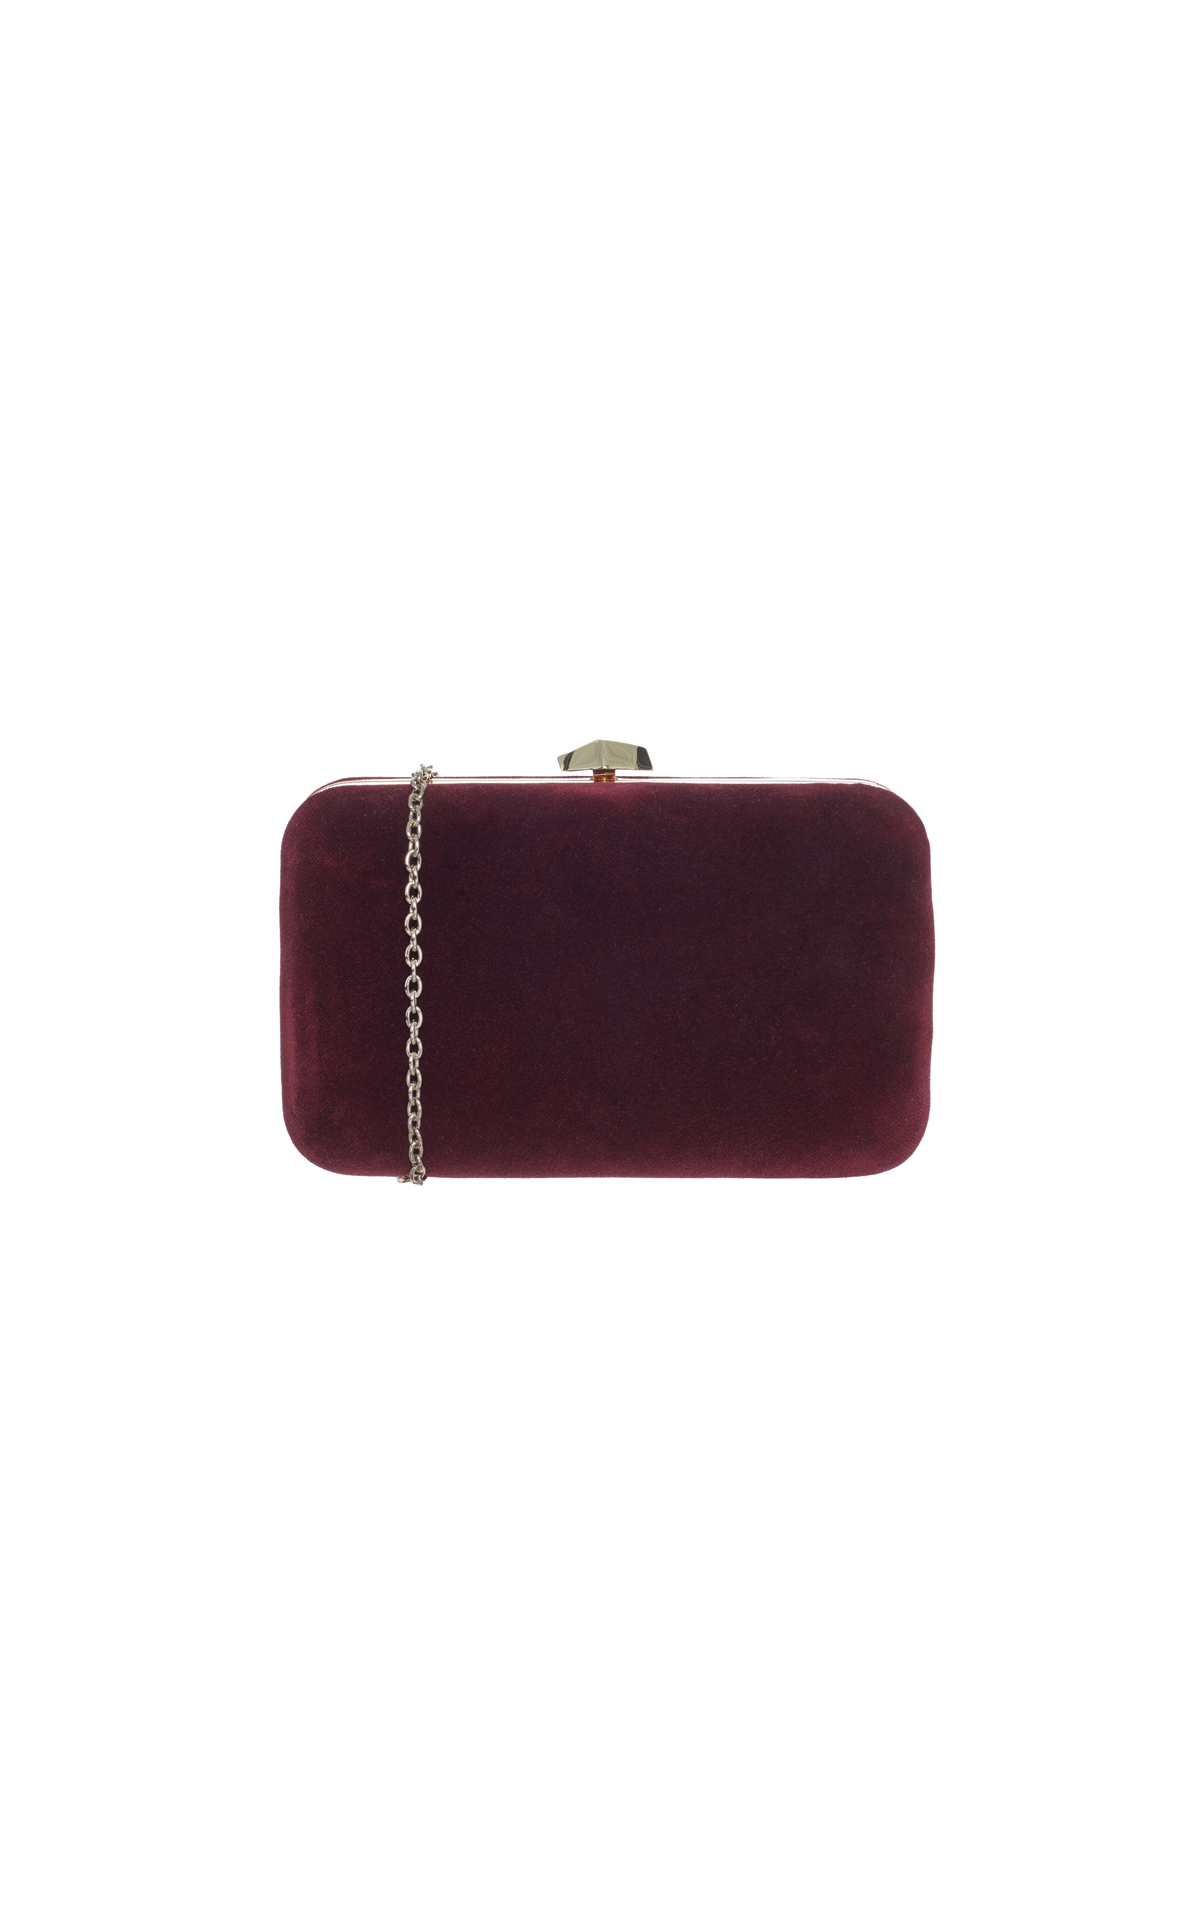 Coccinelle Velvet box clutch red from Bicester Village